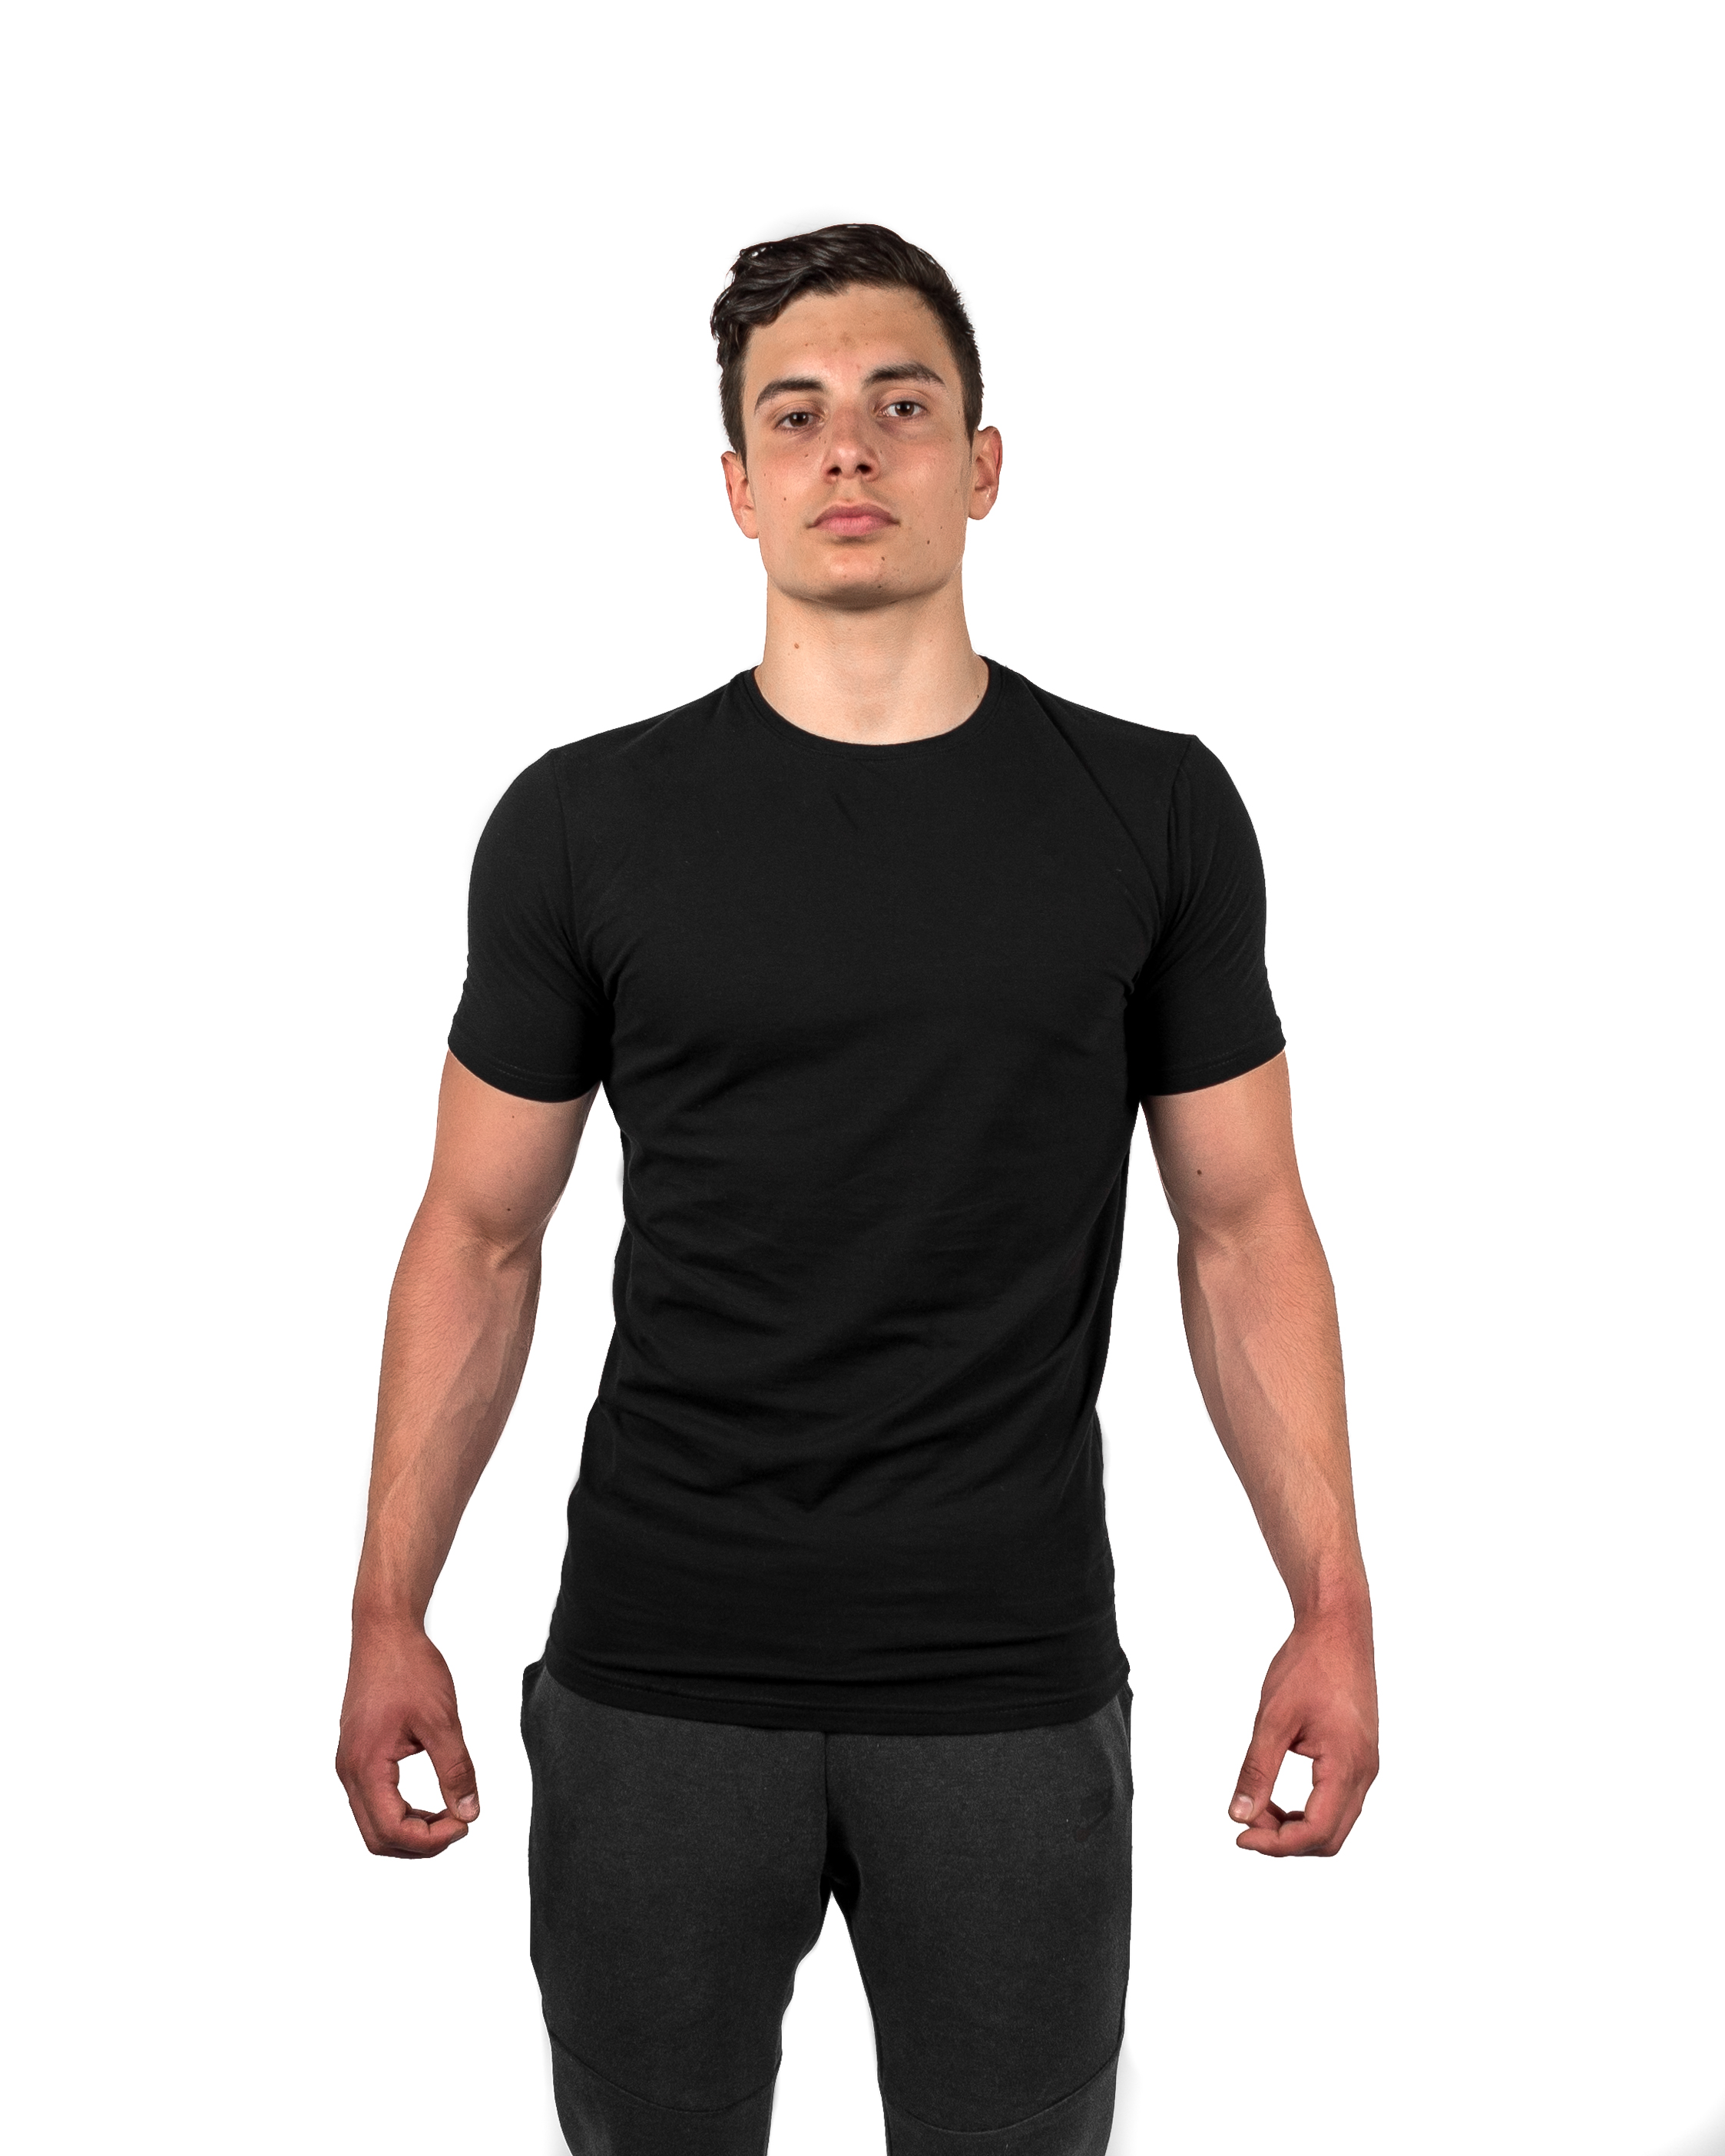 b22972c5768aea The Muscle Fit Tee - Gymfuse